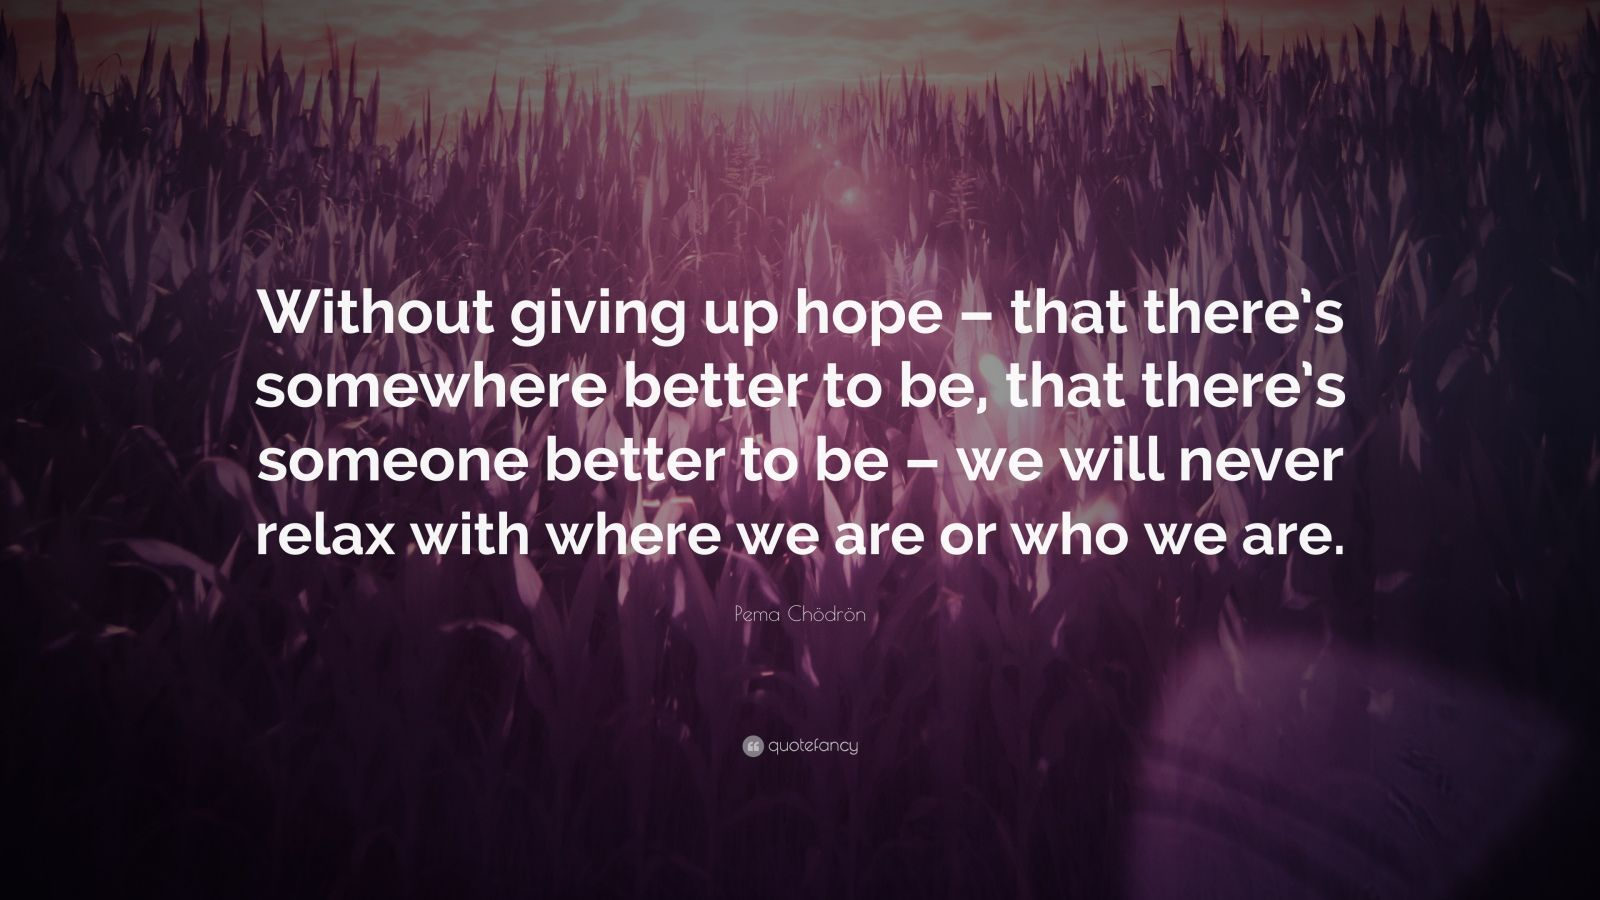 """Pema Chödrön Quote: """"Without giving up hope – that there's somewhere better to be, that there's someone better to be – we will never relax with where we are or who we are."""""""